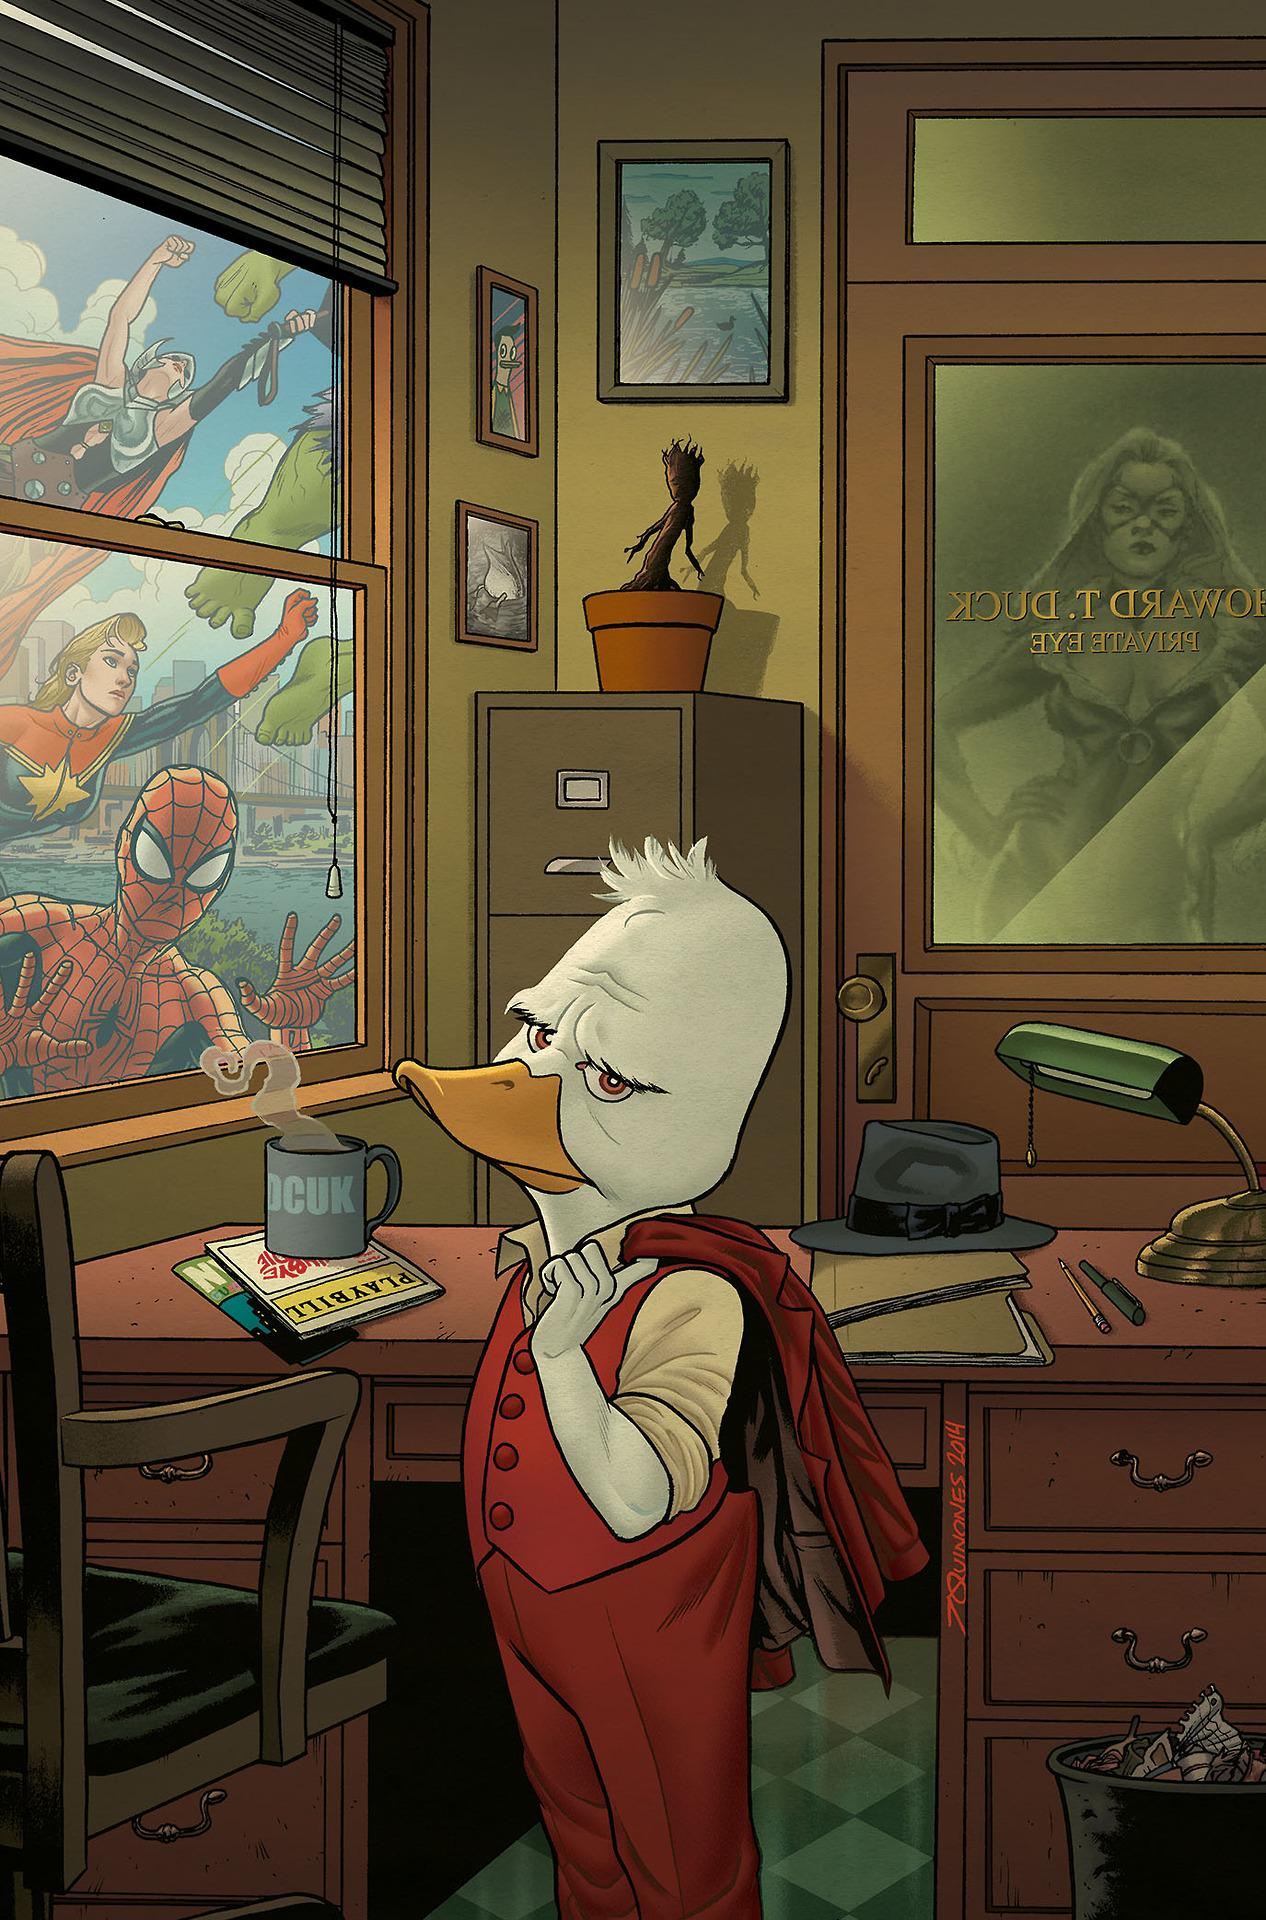 1266x1920px Howard The Duck 837.96 KB